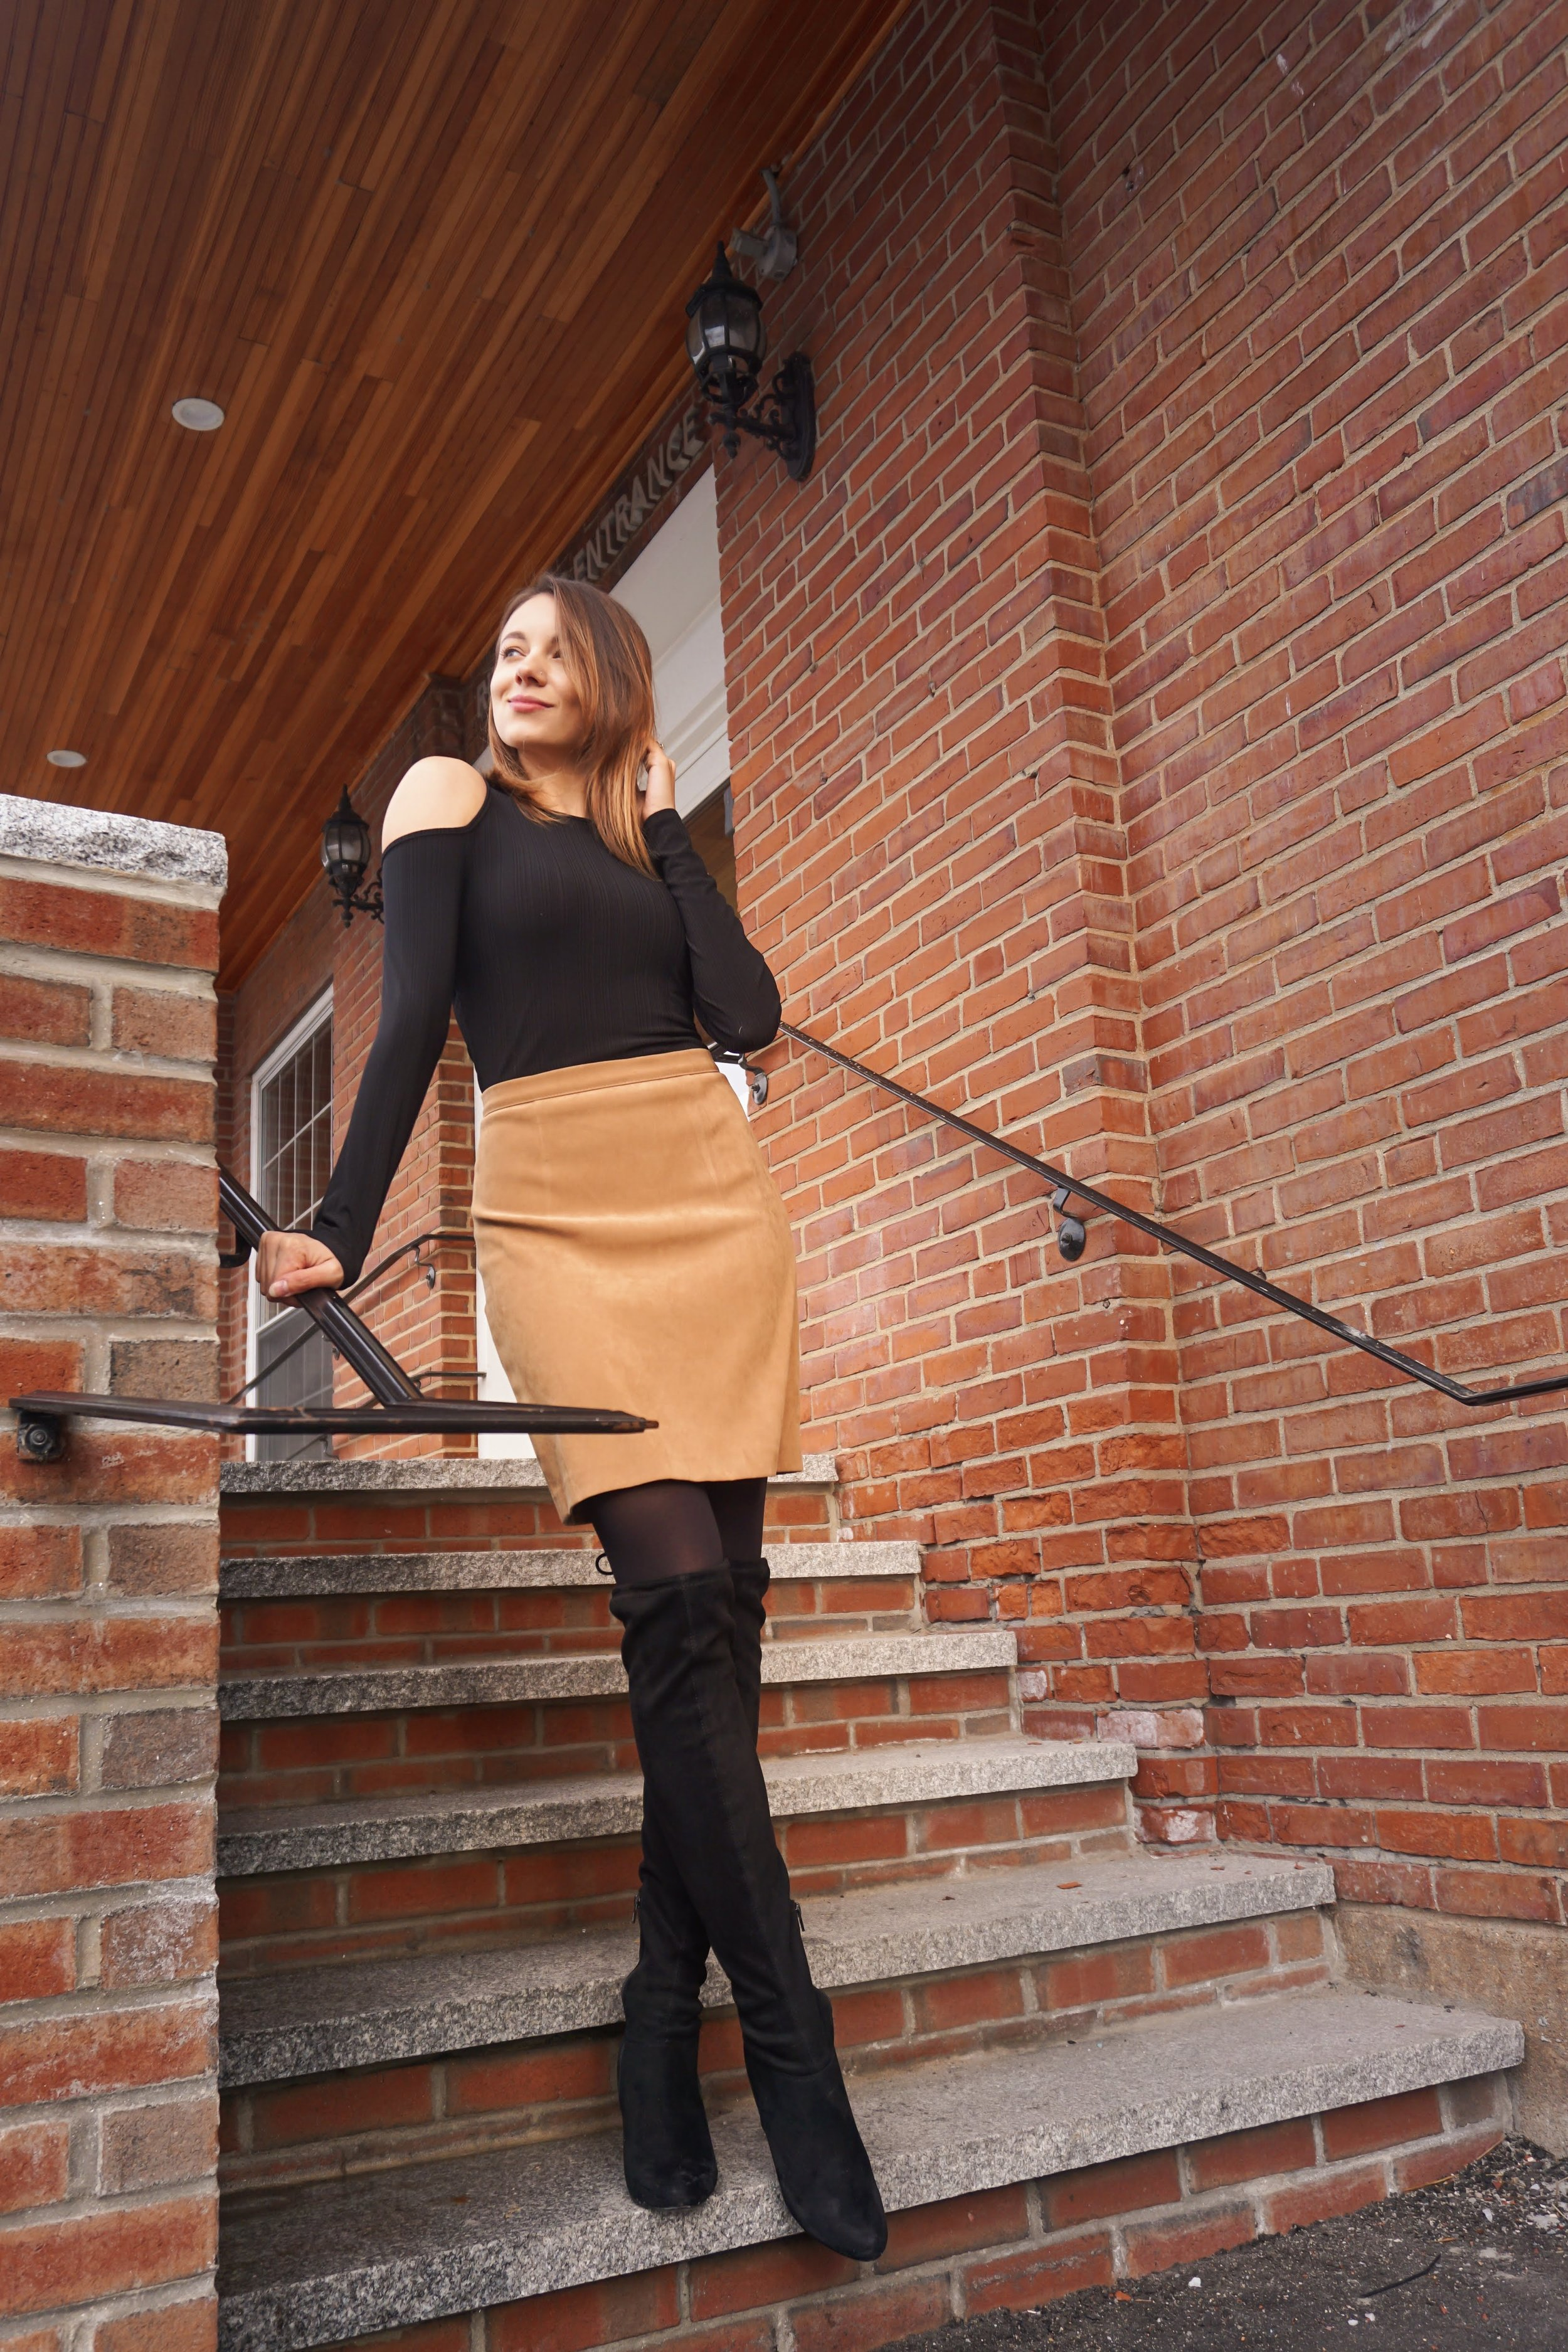 A blogger posing near a brick building wearing a black shirt with open shoulders, brown skirt, and black over the knee boots.